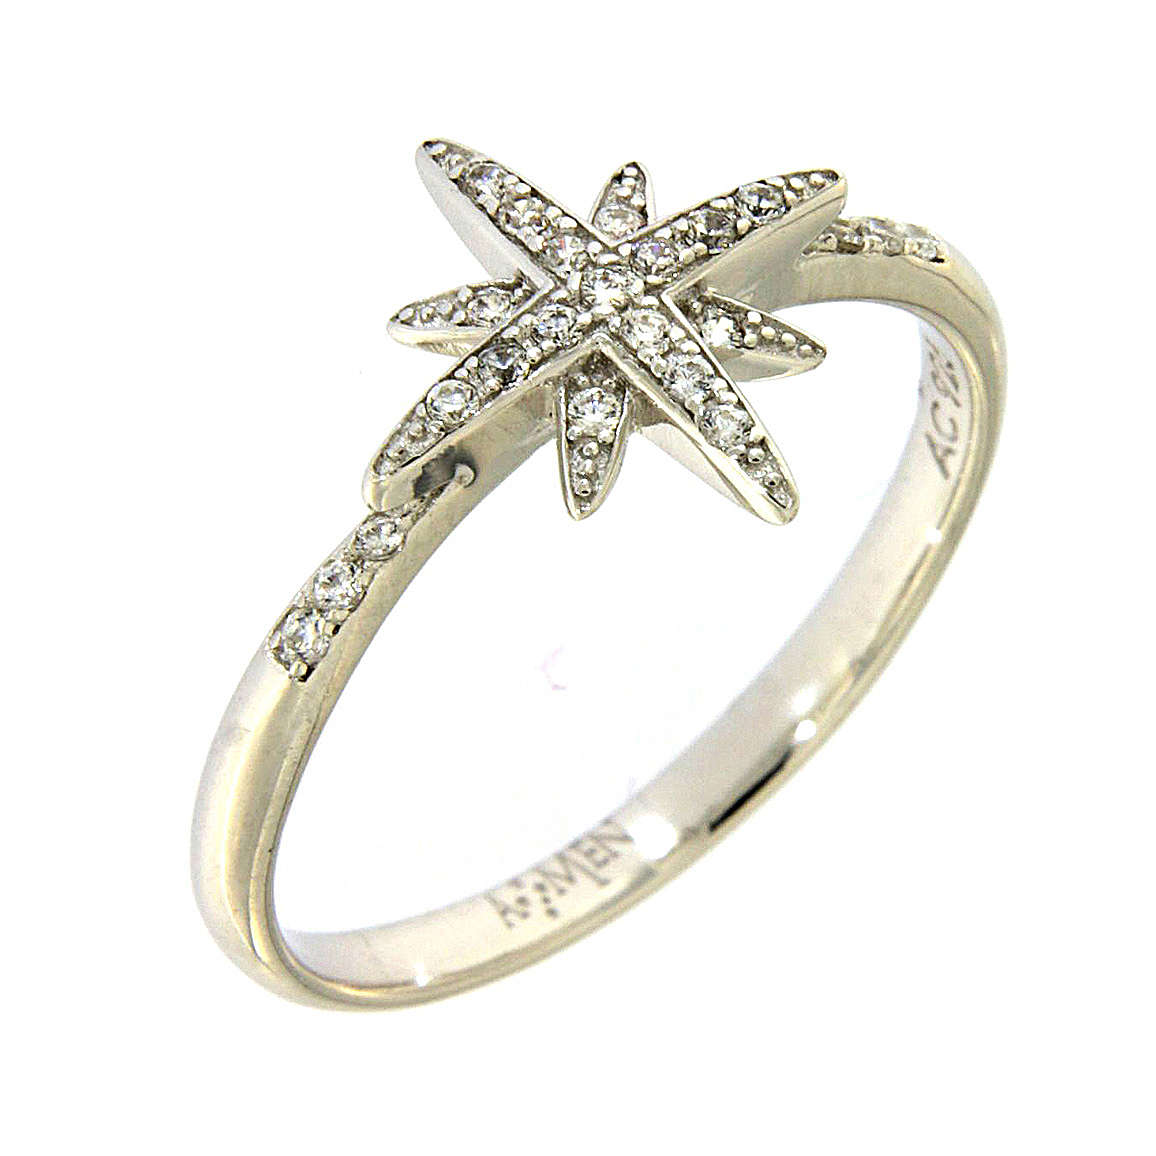 AMEN 925 sterling silver ring finished in rhodium with zirconate star 3